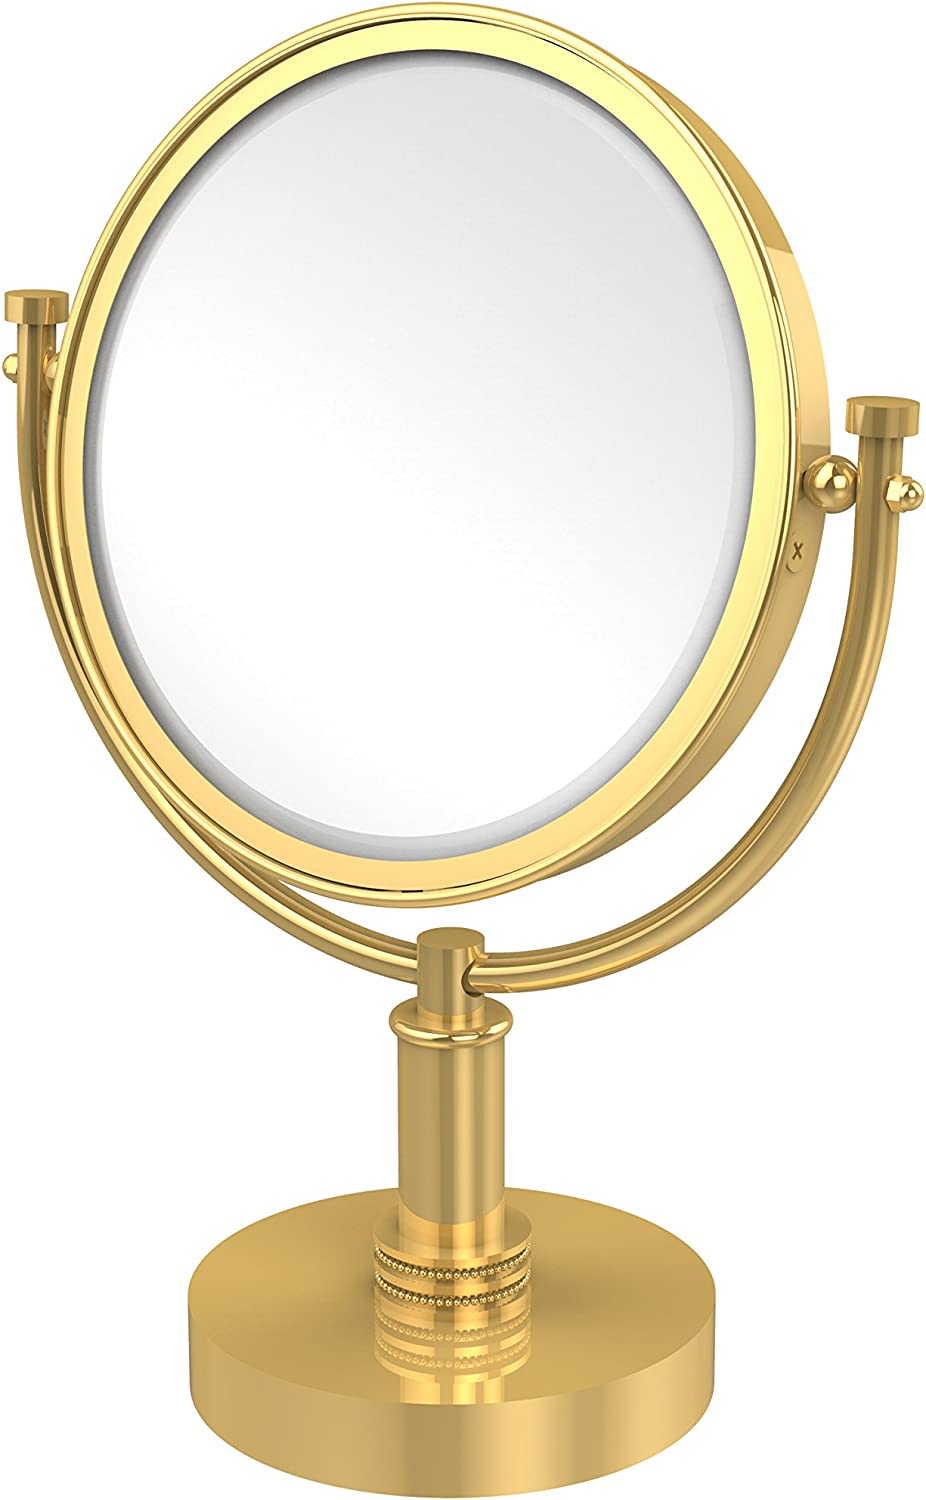 Allld  Allied Brass DM-4D 5X-PB 8 inch Vanity Top Make-up Mirror 5X Magnification,